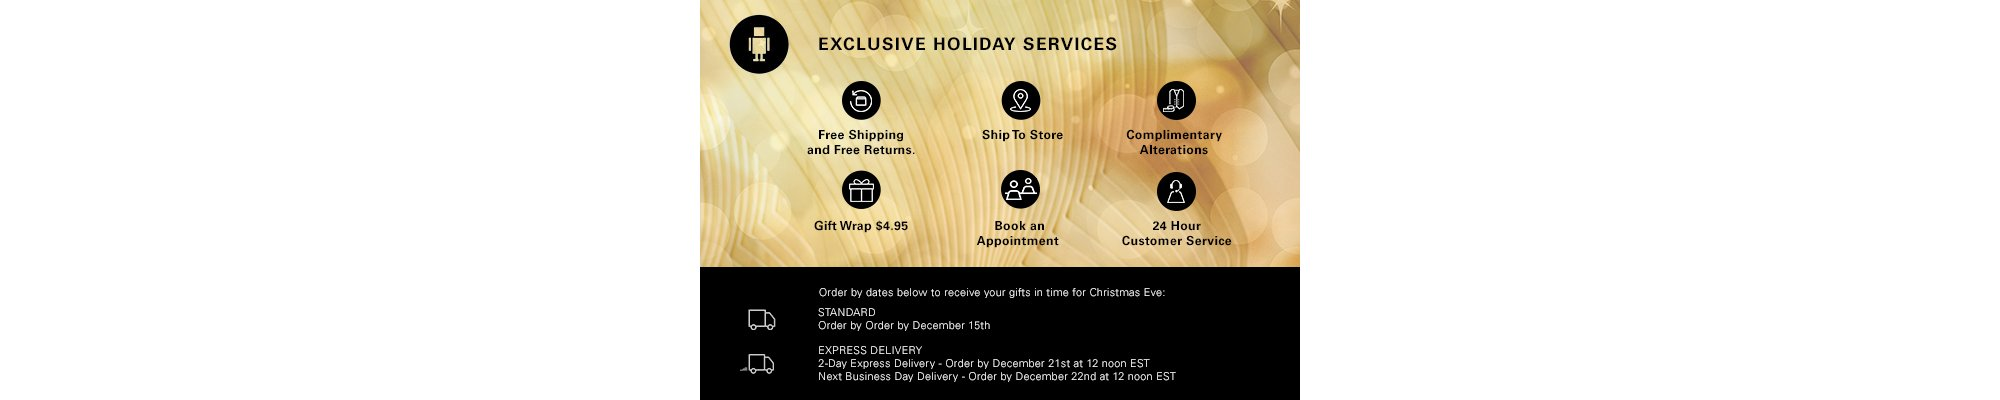 Holiday Services by HUGO BOSS